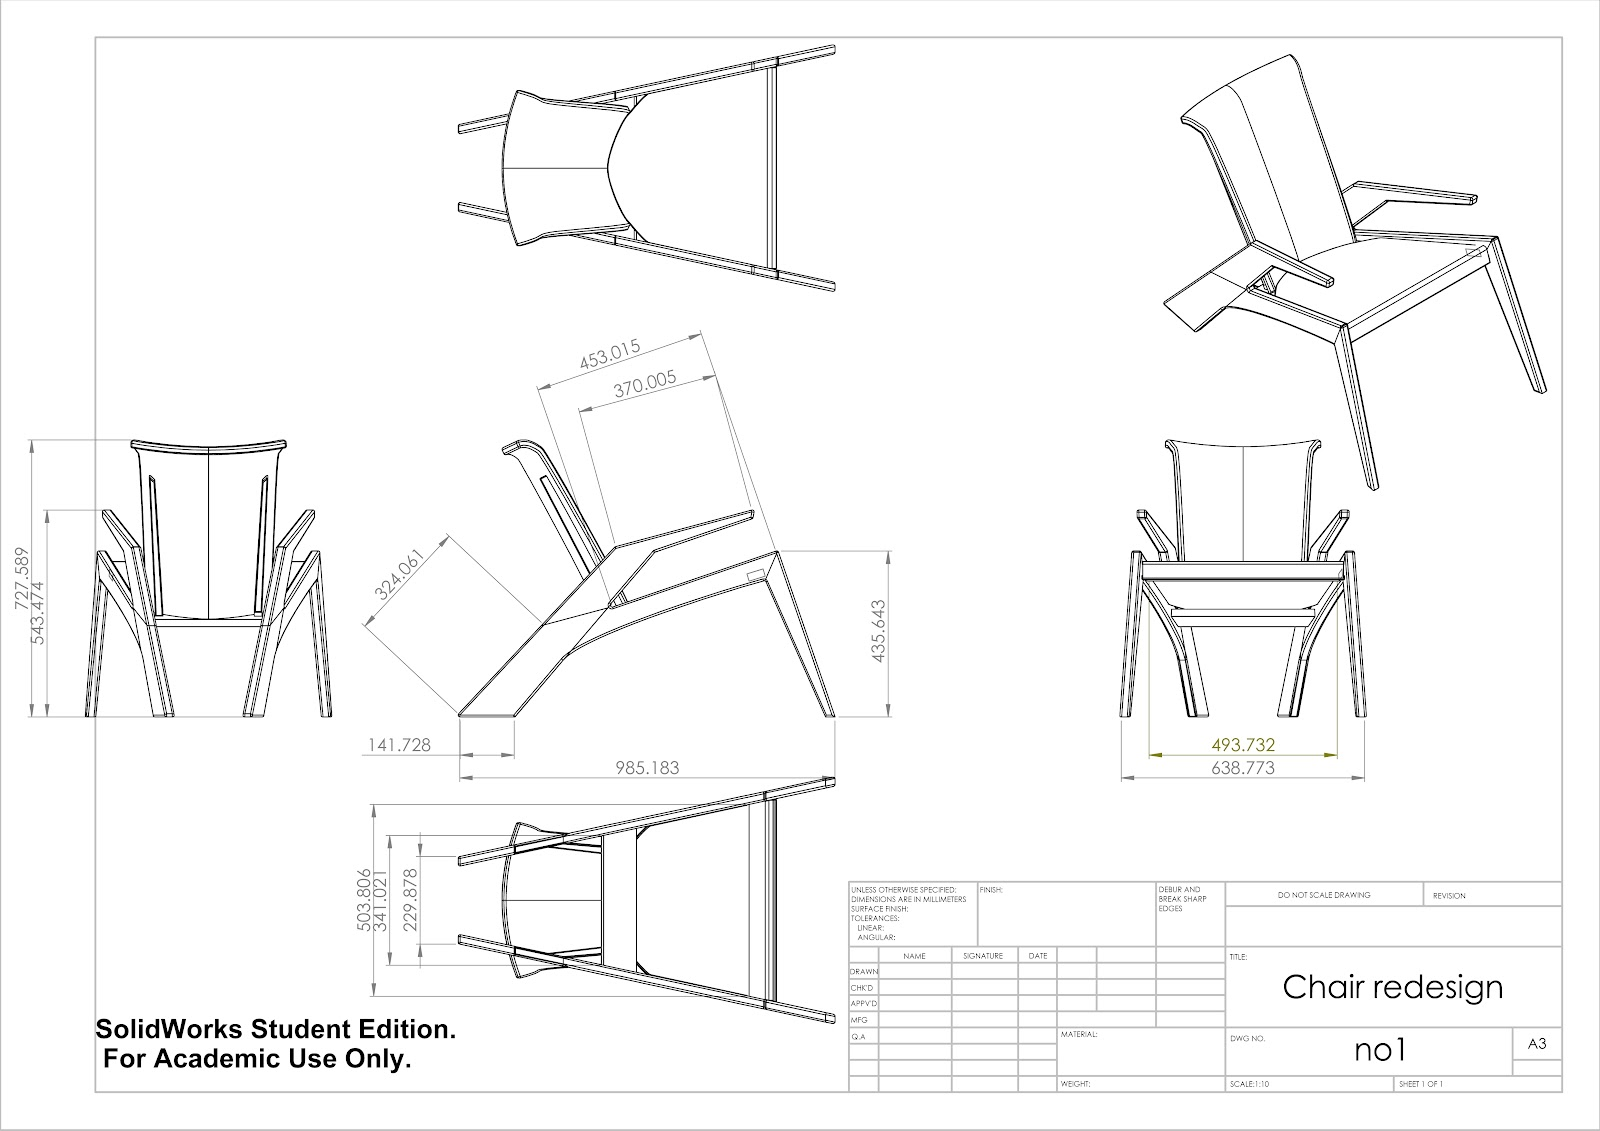 chair design solidworks dance moves furniture detail drawing most favored home